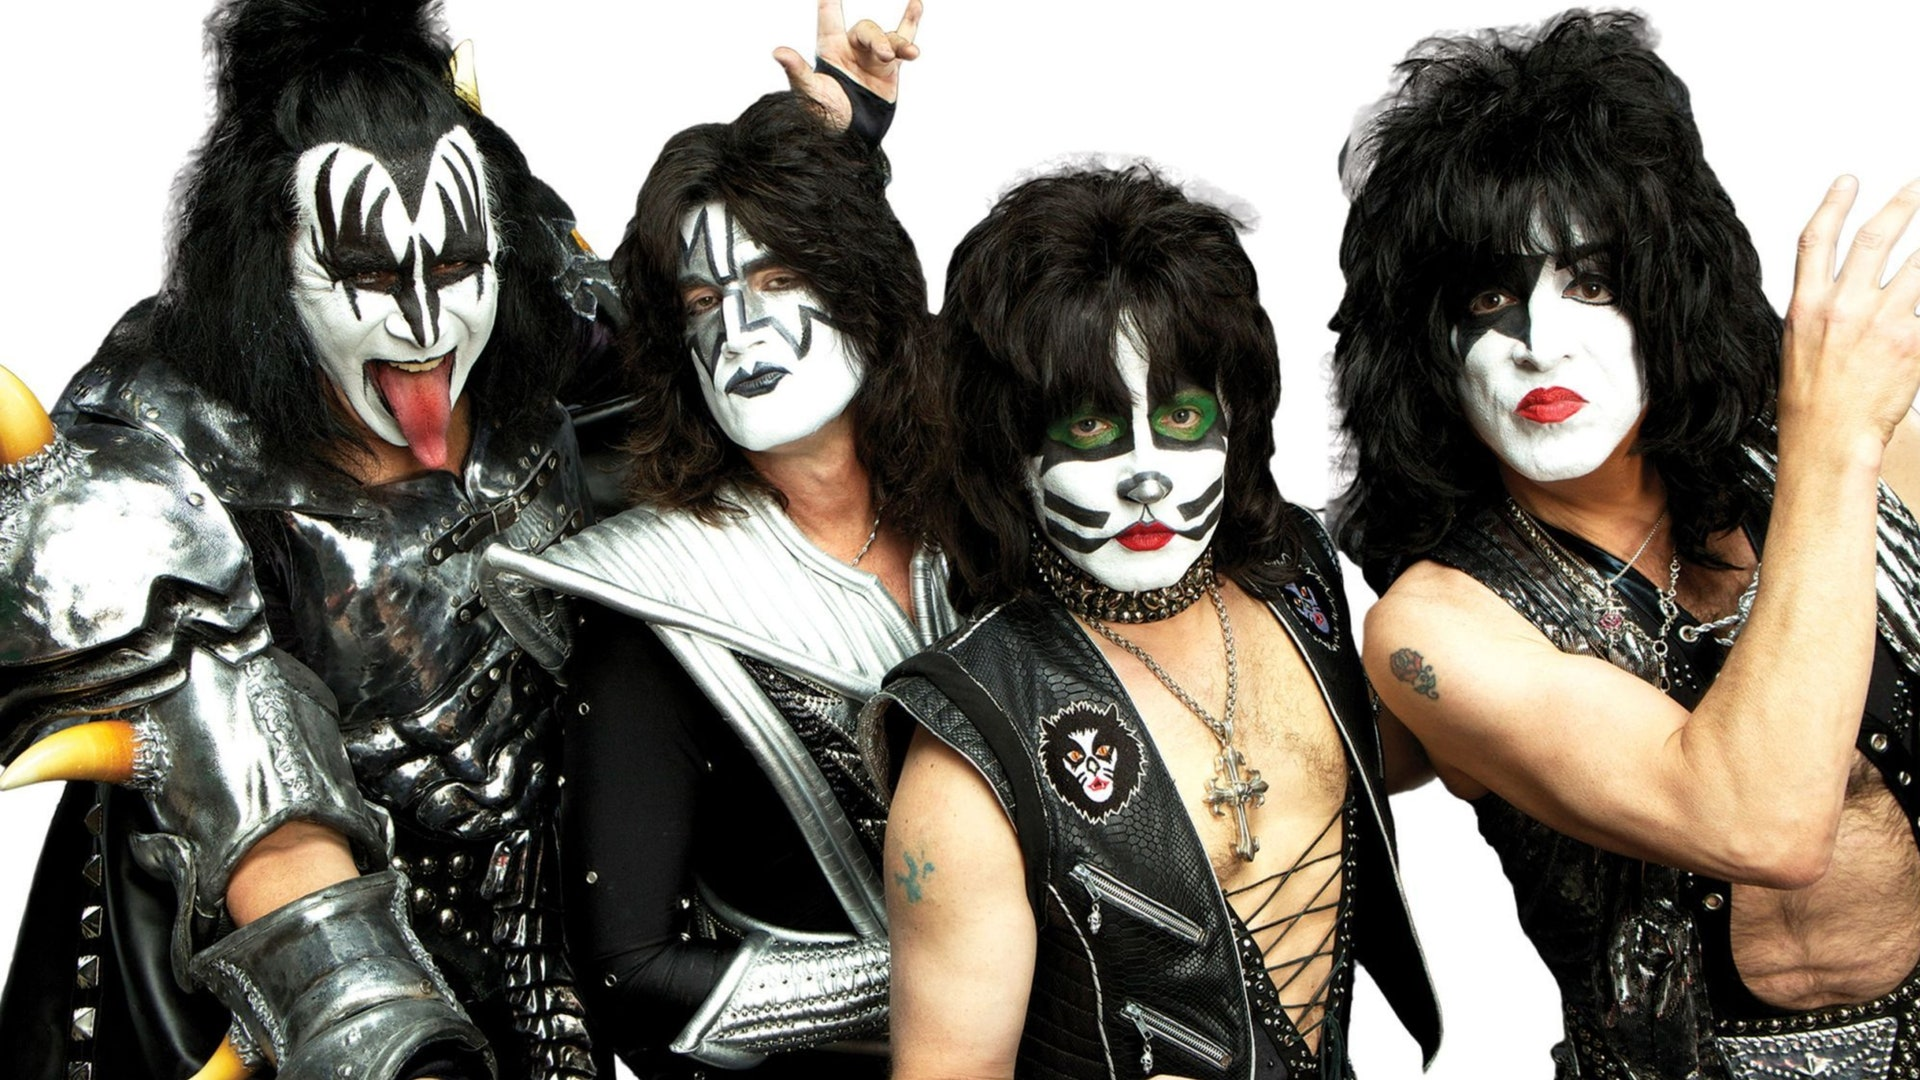 1622100711 KISStory the documentary about KISS that portrays the hottest band